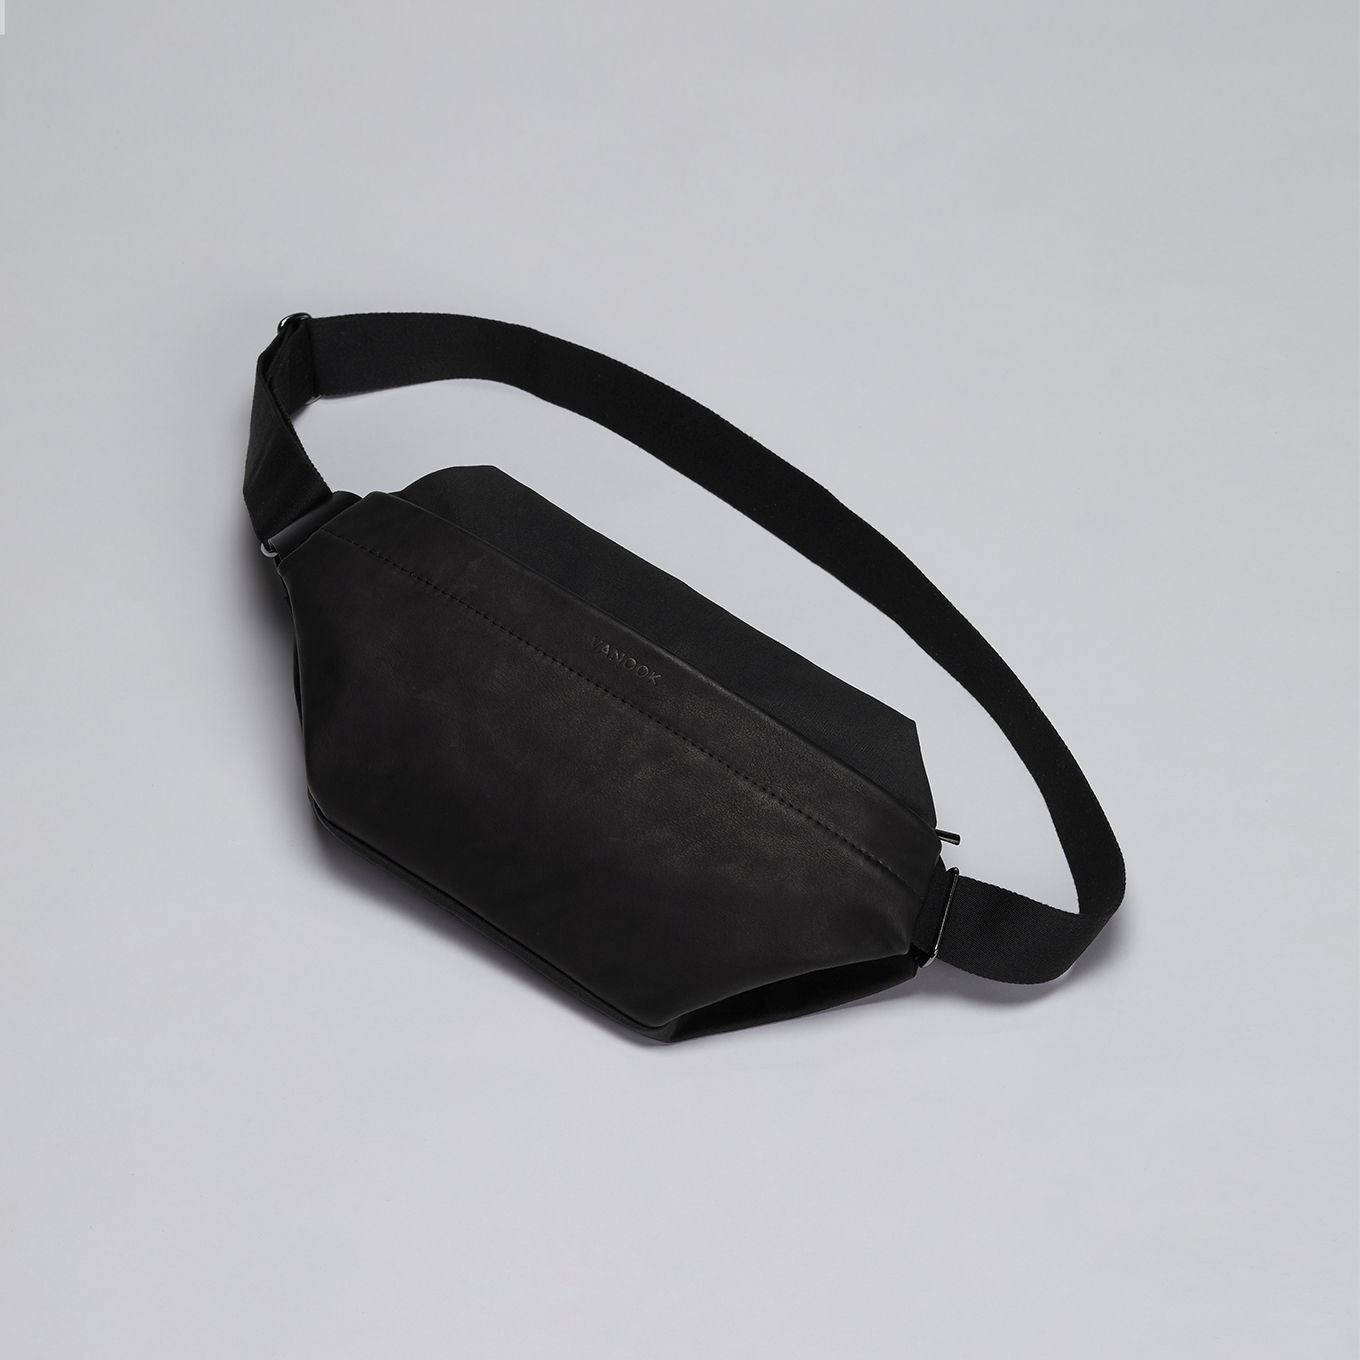 560_Shoulder Bag-Sling Bag-Leather-Coated Cotton